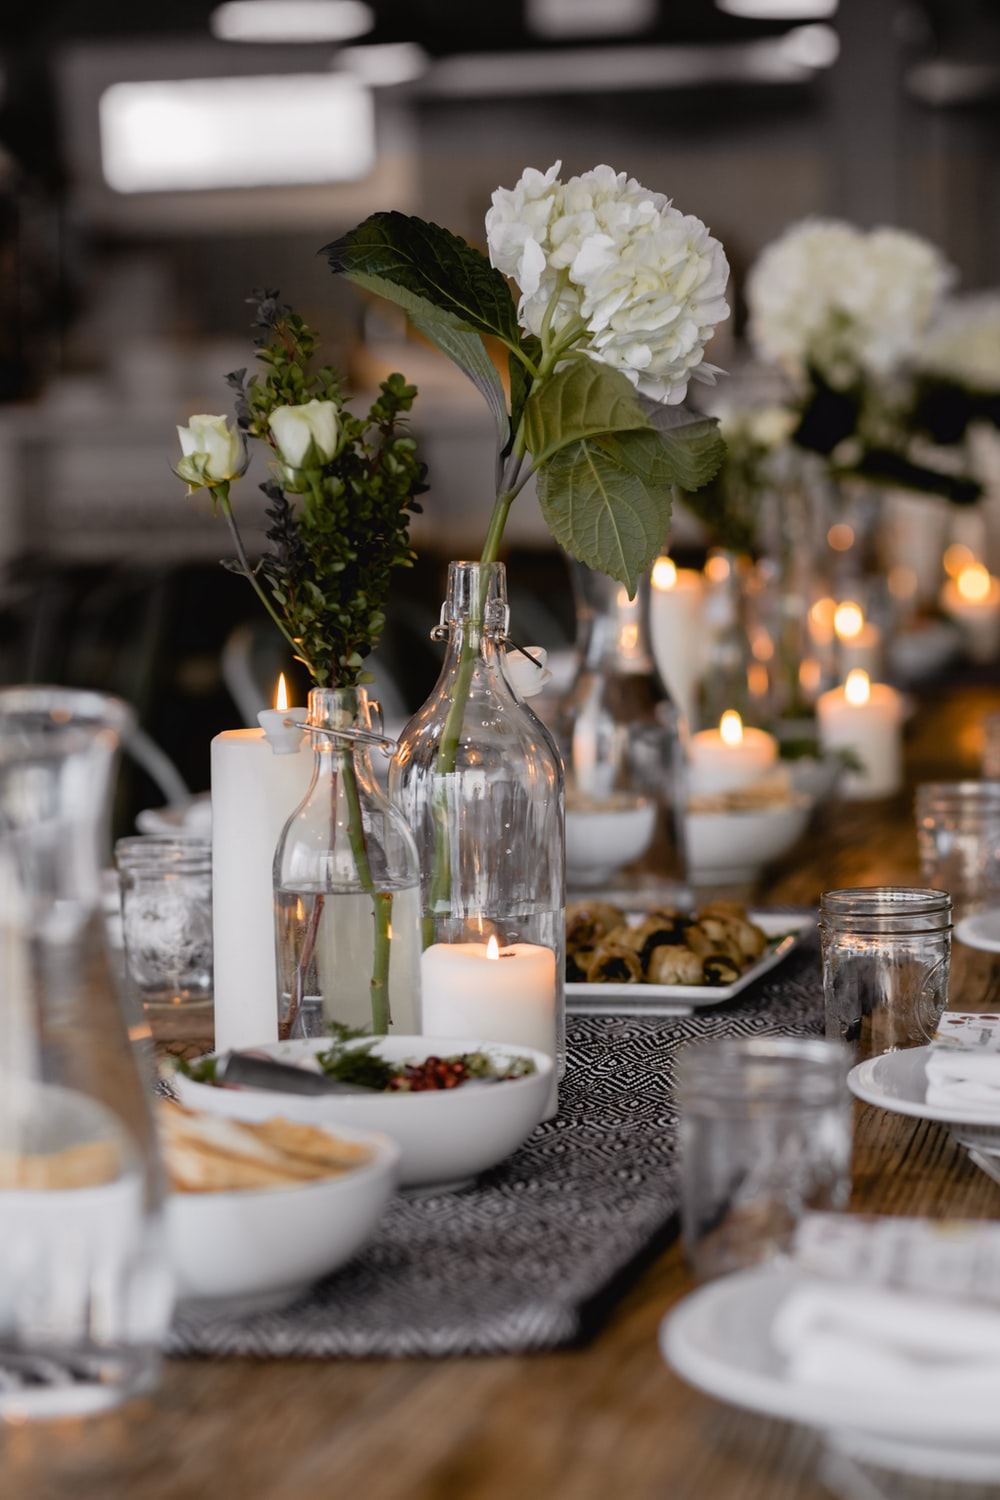 selective focus photography of white flowers beside lighted candle on table